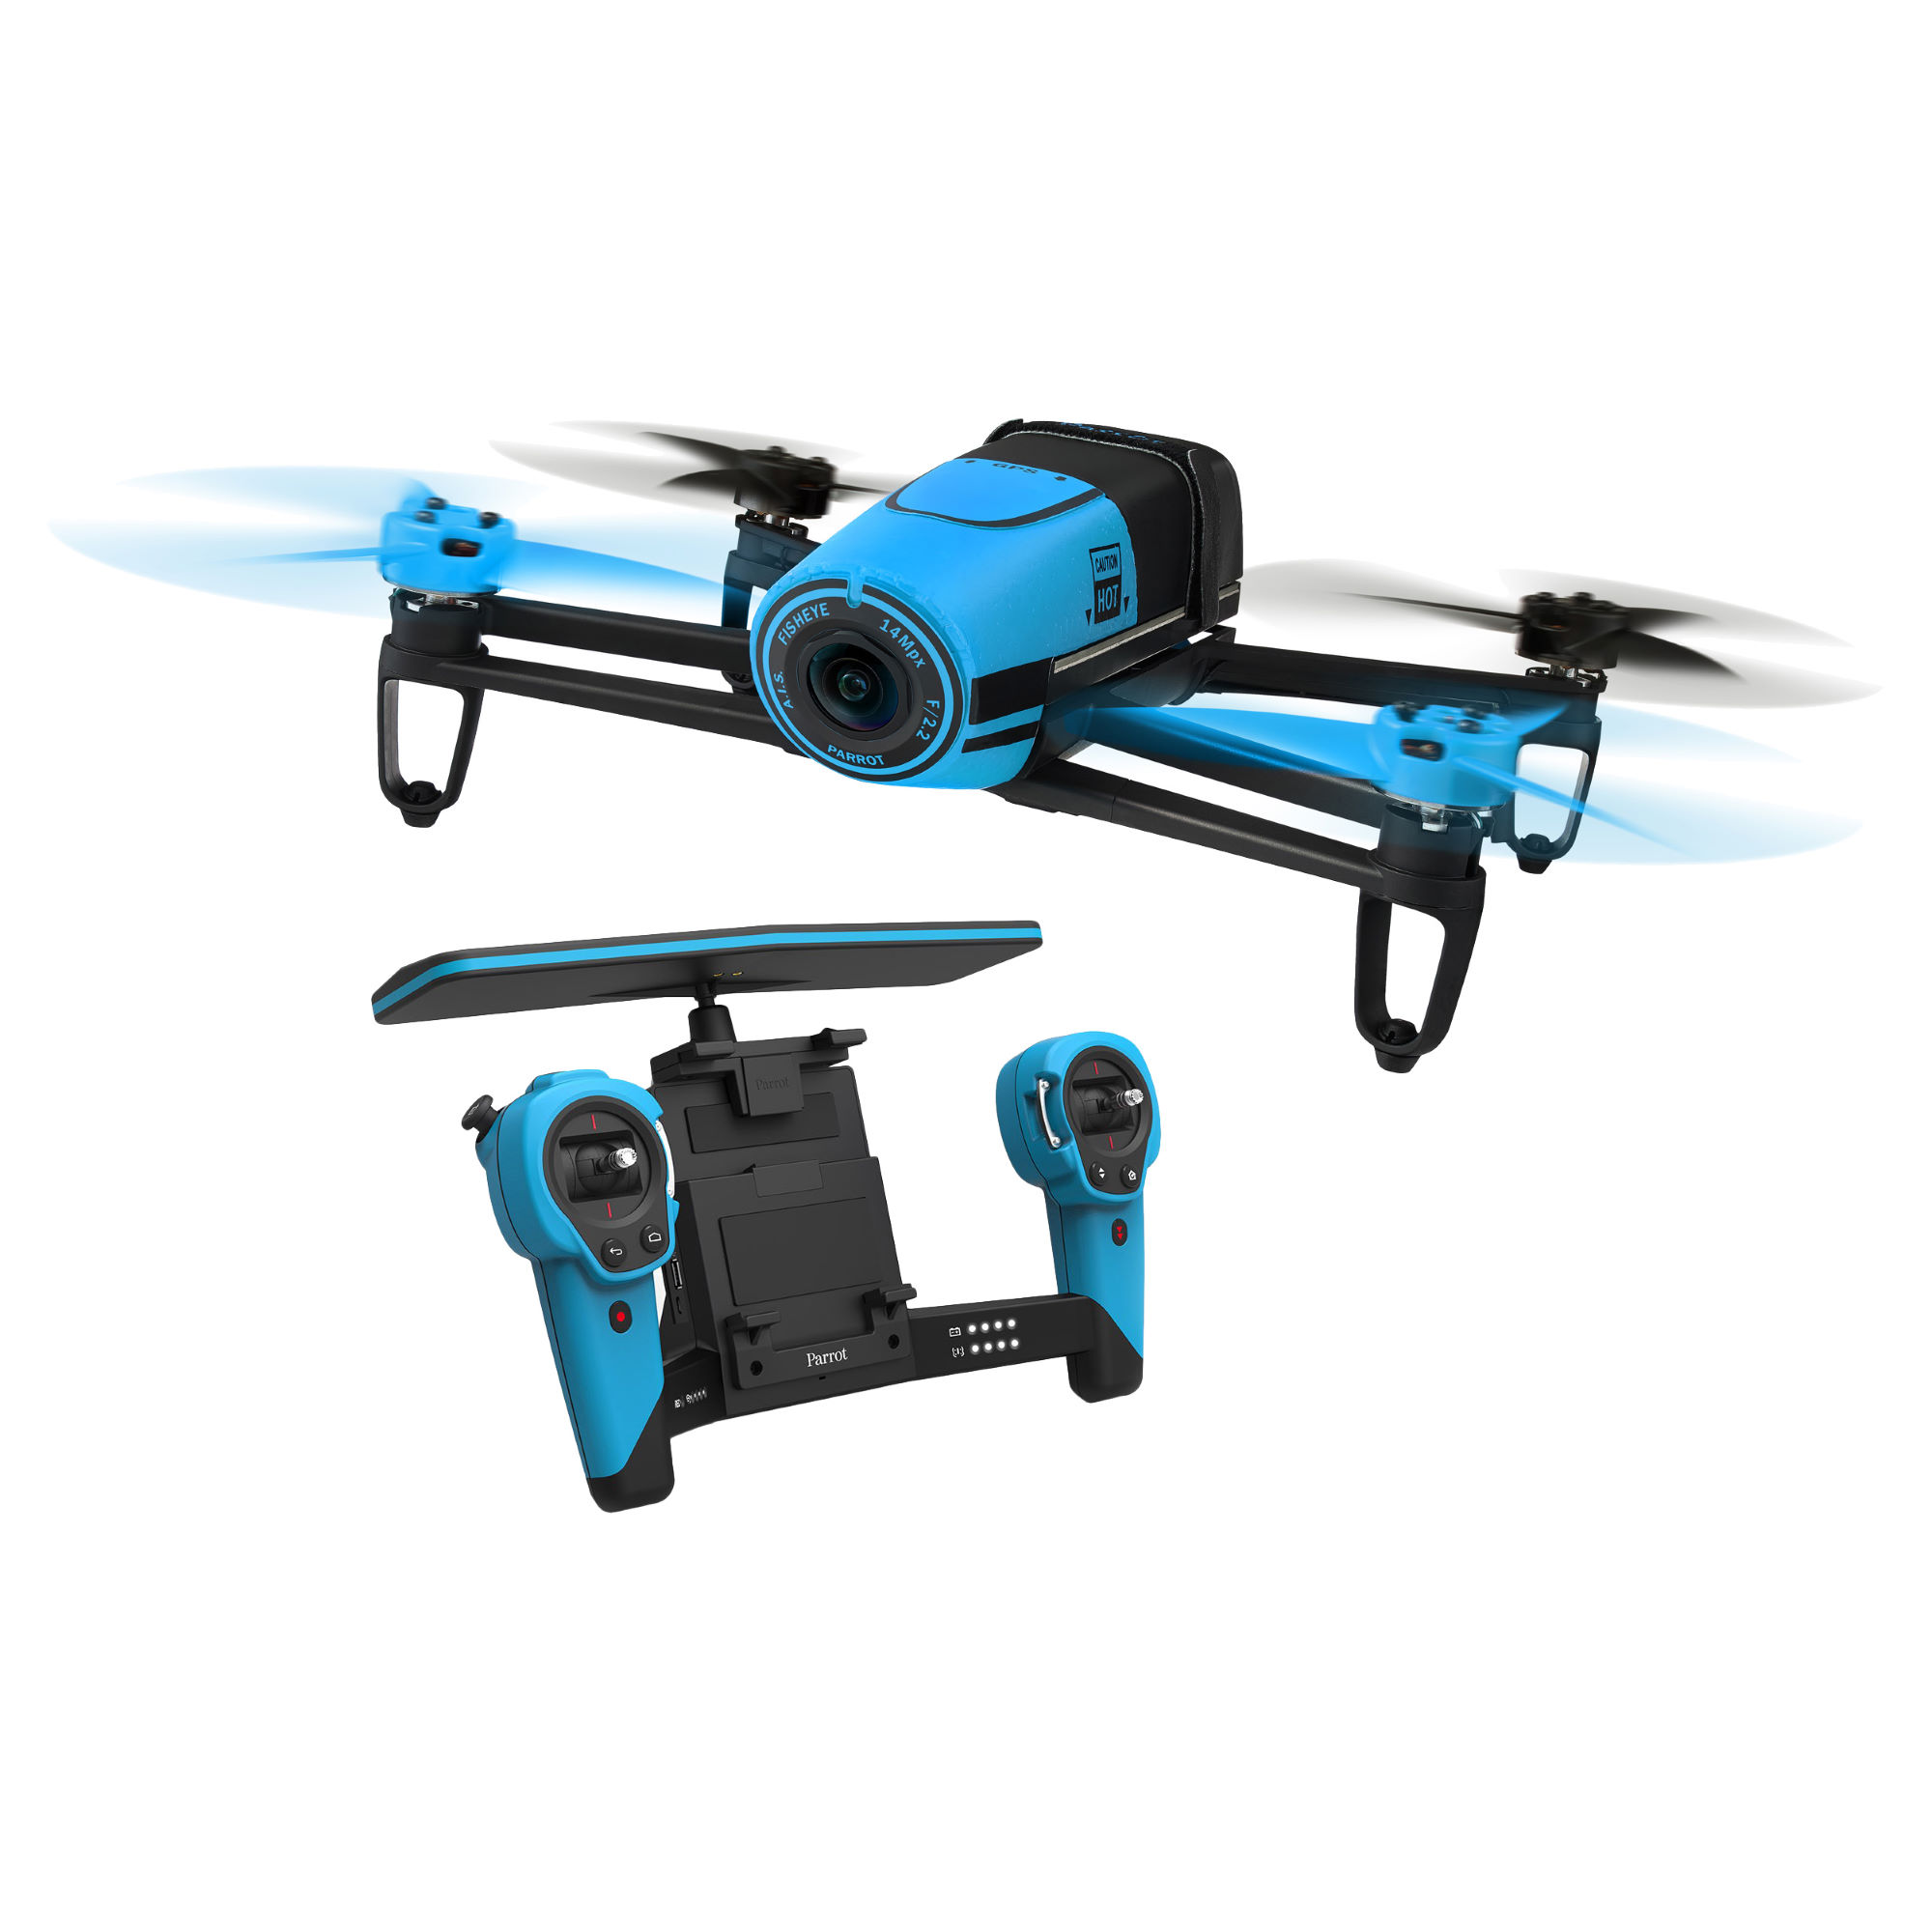 Parrot Bebop and Skycontroller